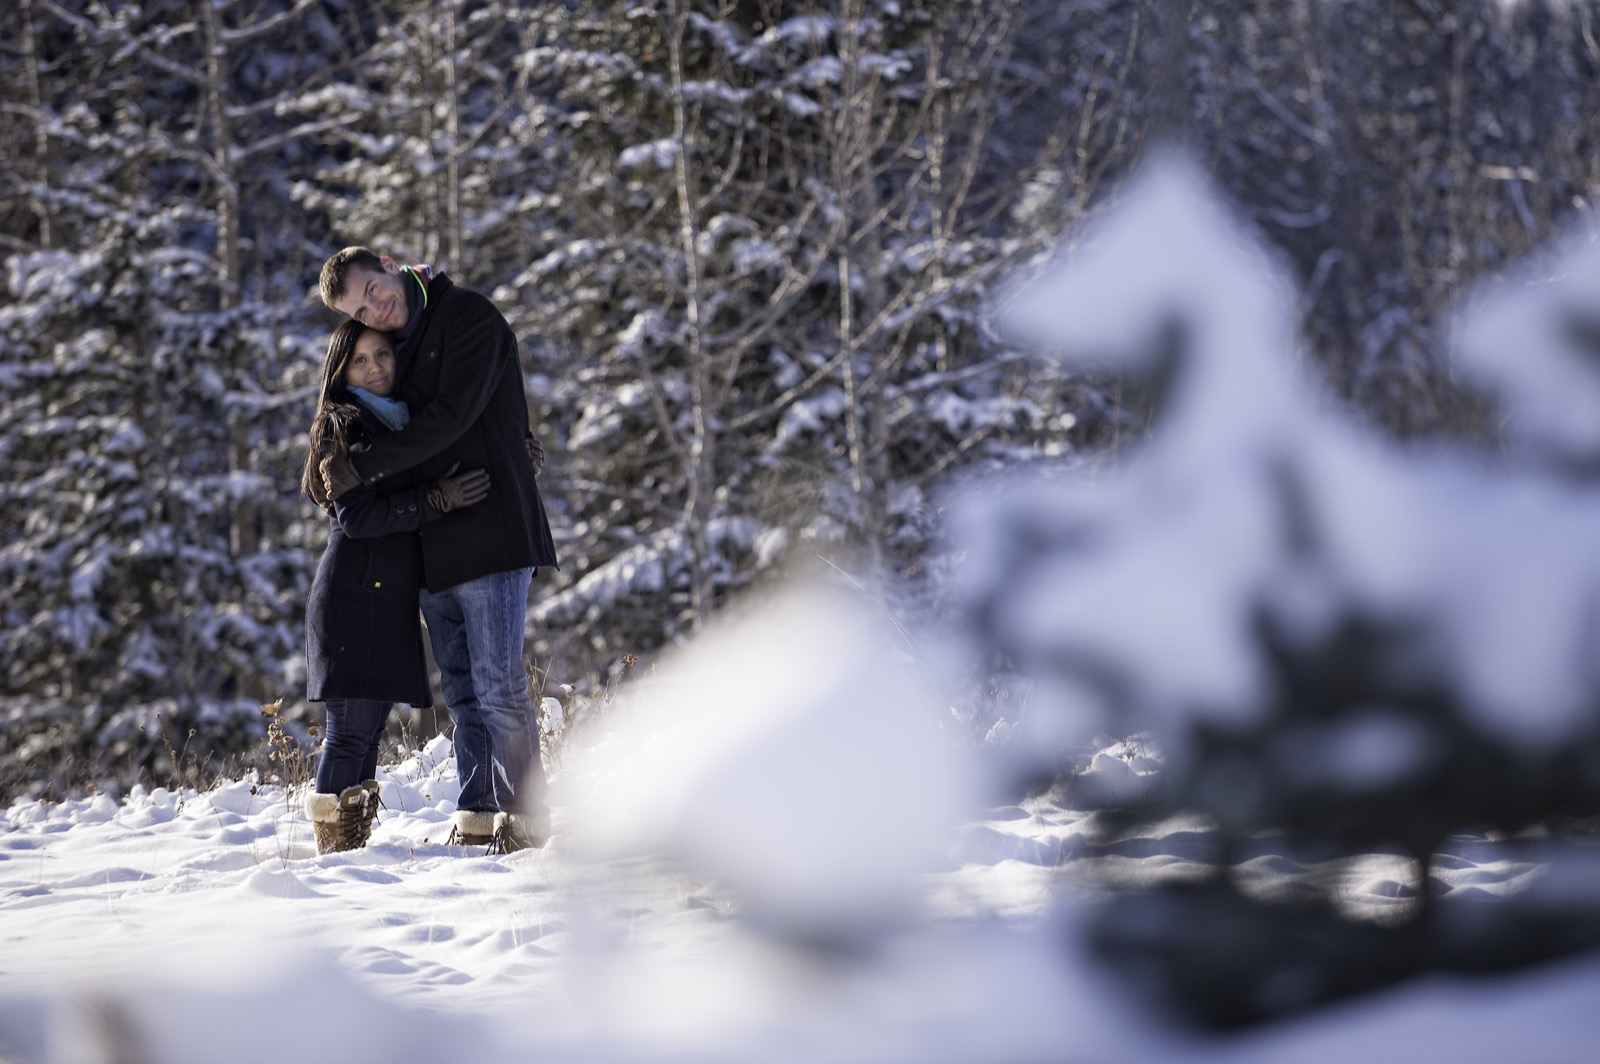 victoria-wedding-photographers-calgary-winter-engagement-proposal-07.jpg